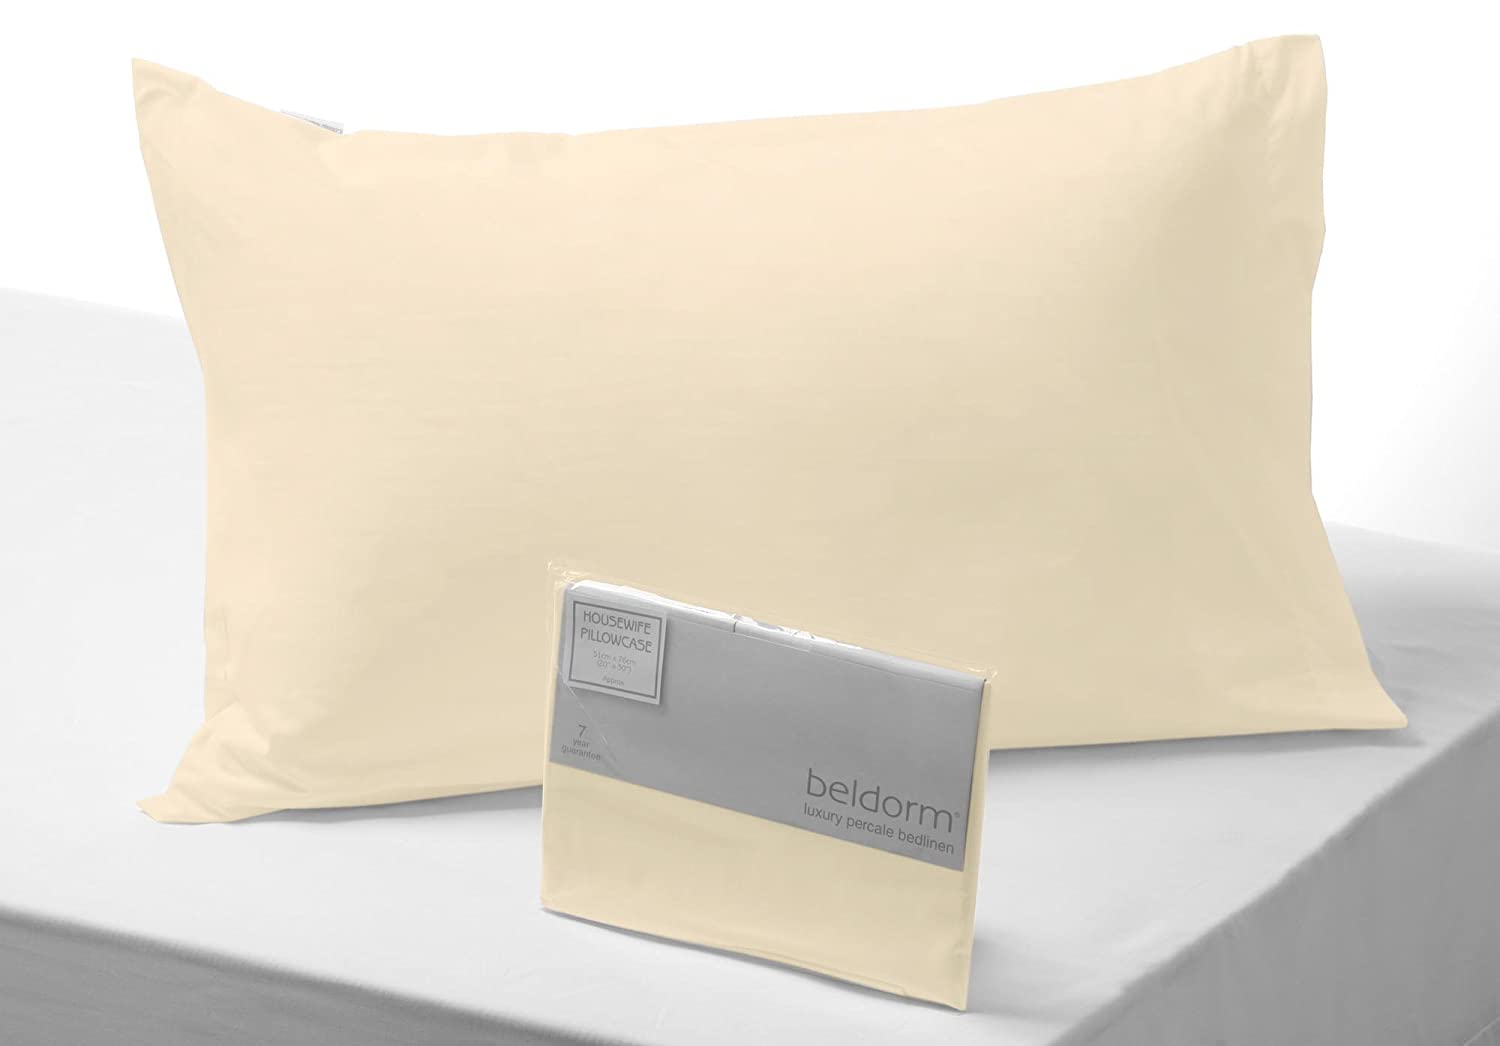 Belledorm Egyptian Cotton 400 Thread Housewife Pillowcase, Cream, Housewife - Luxury Quality Bed Linen